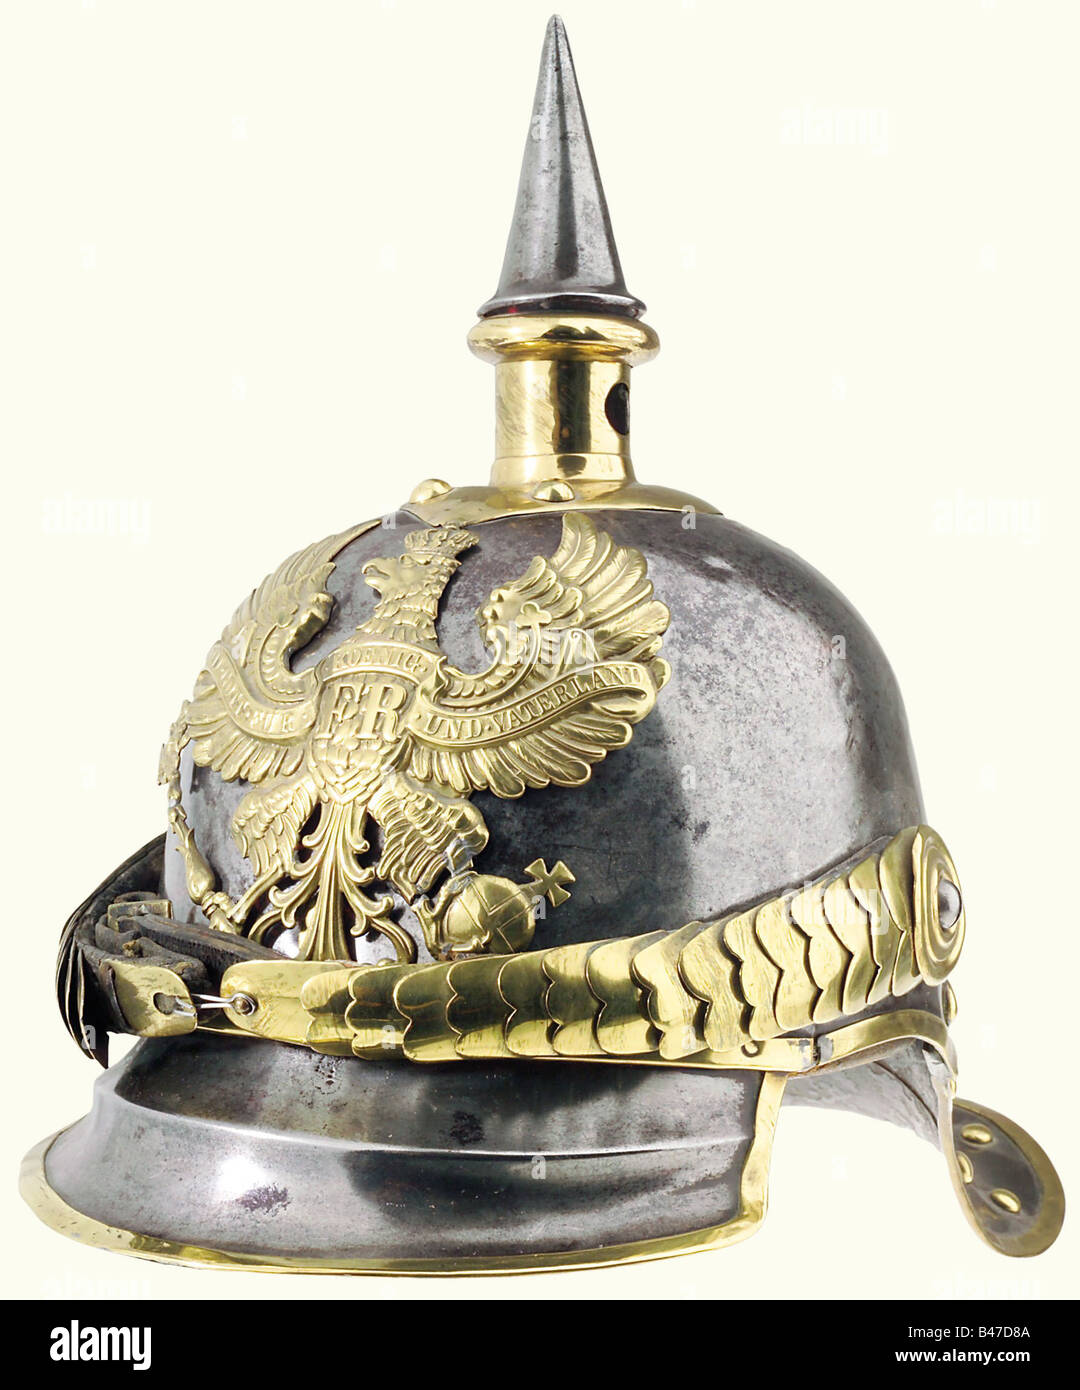 Prussia: A helmet for troopers, of cuirassiers of the line, 1867 pattern. Brass-rimmed steel skull, showing some - Stock Image